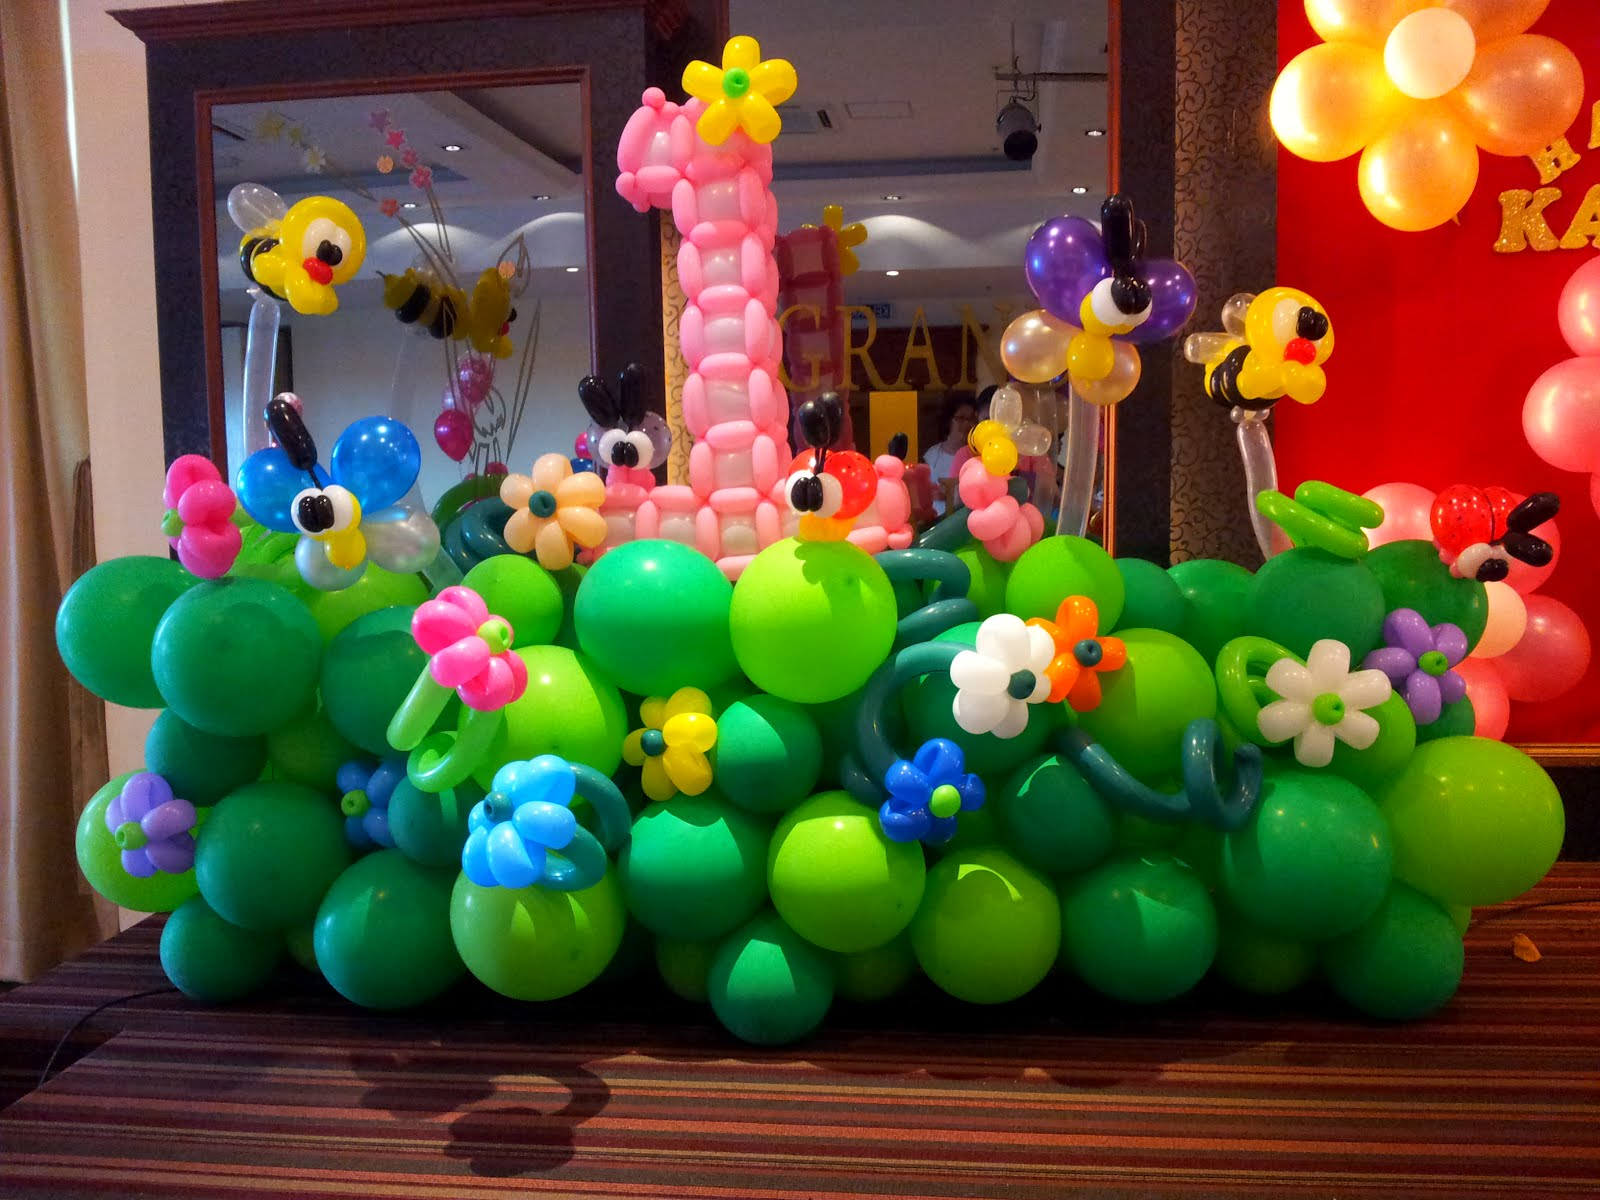 Balloon decoration for birthday party party favors ideas for Balloon decoration idea